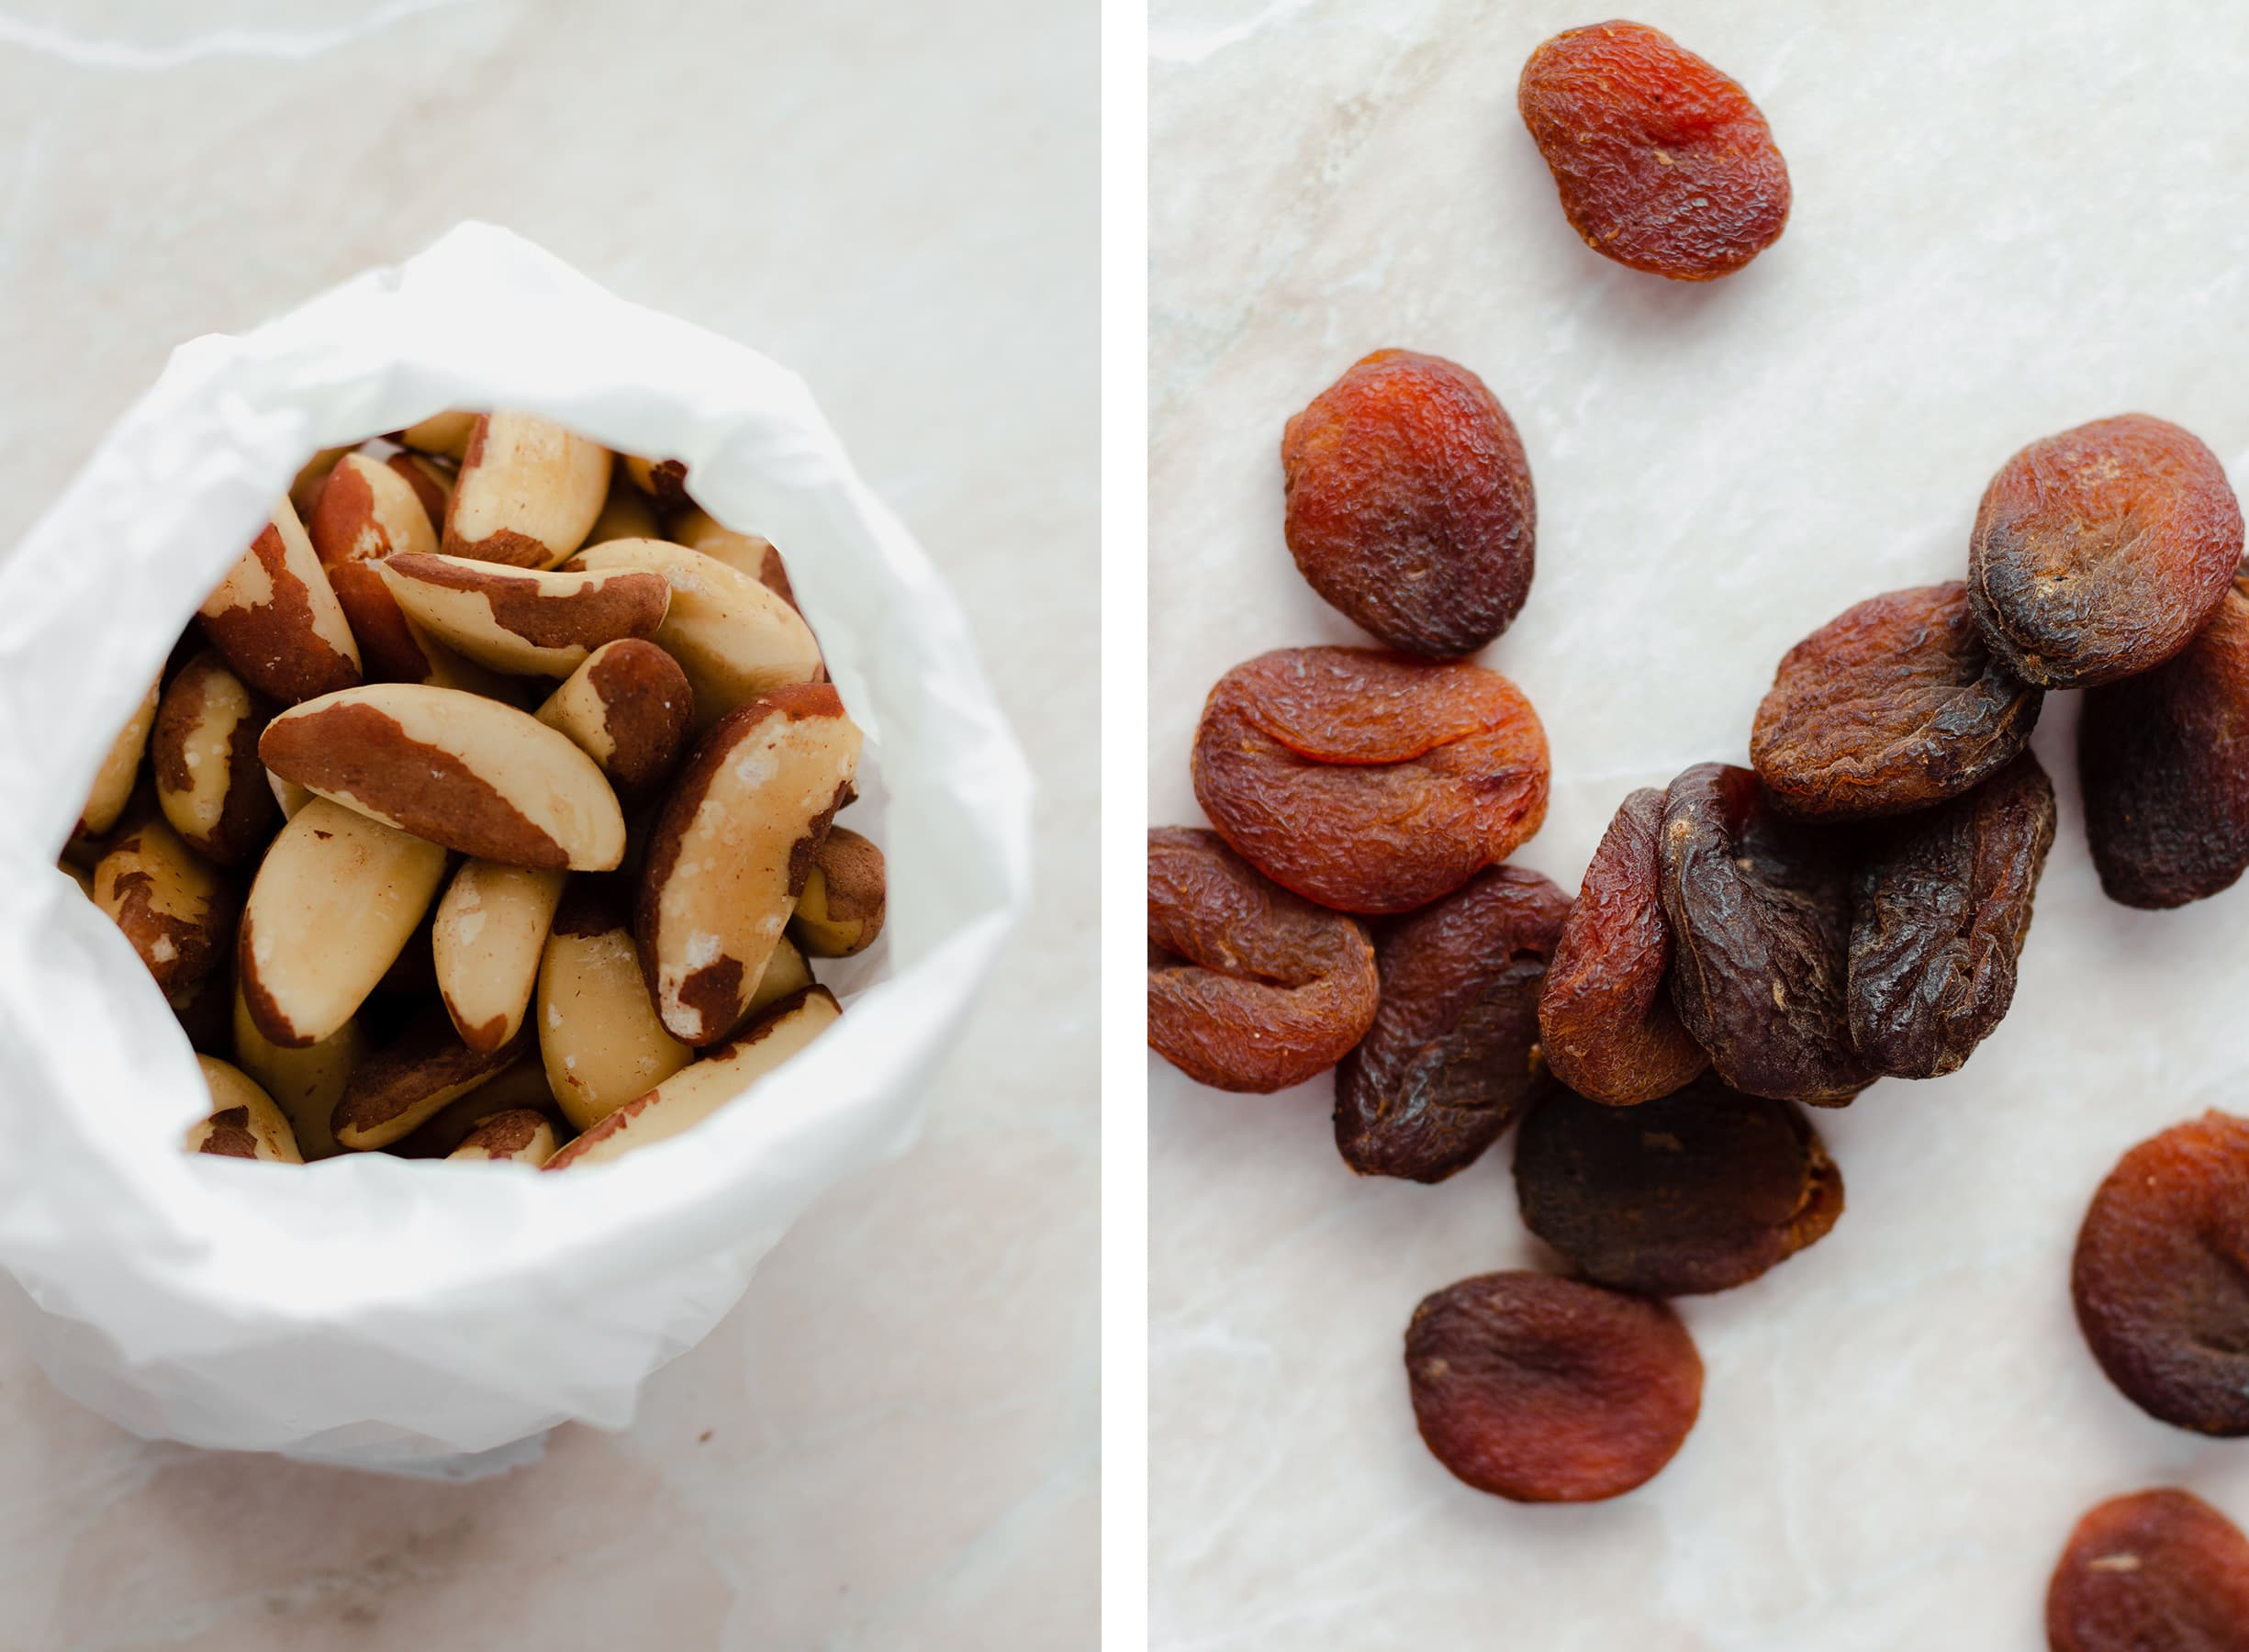 Two photos - one of brazil nuts in a white paper bag, the other of dried apricots.